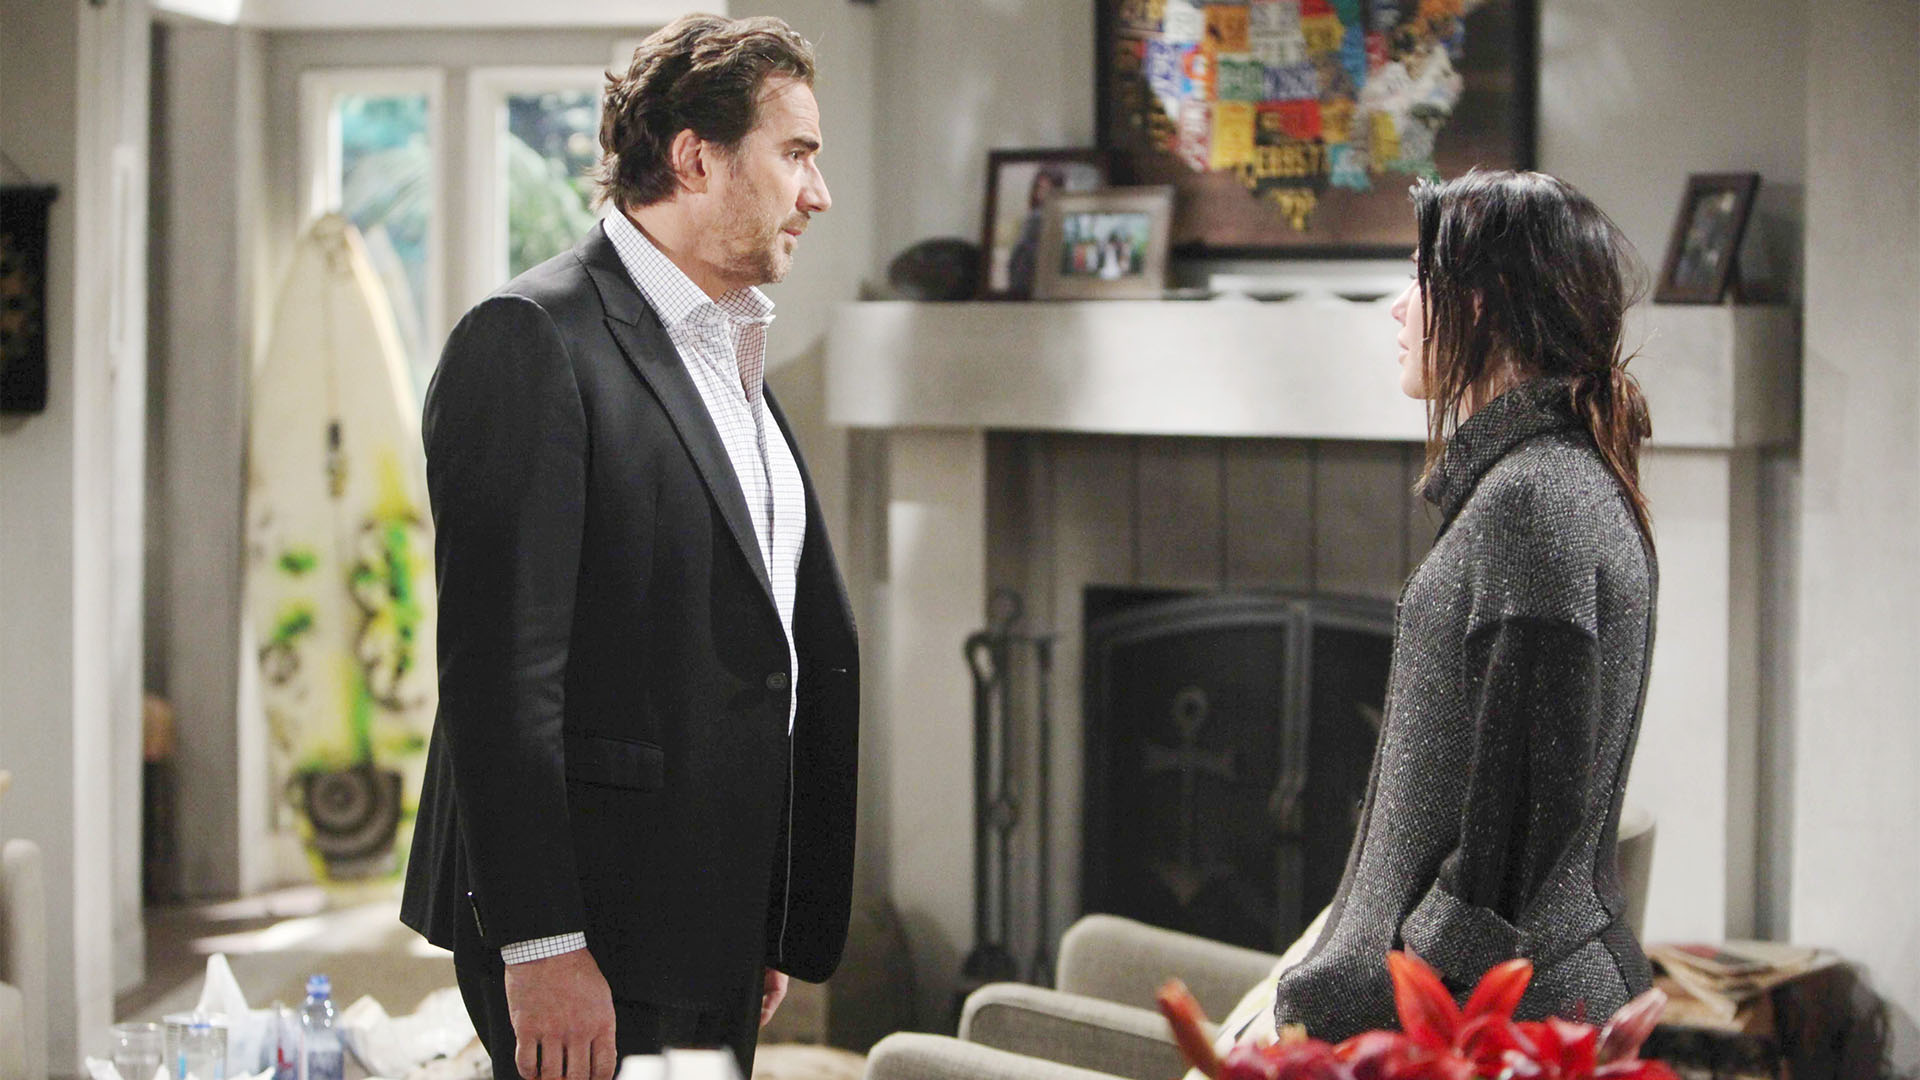 Worried about her father's response, Steffy prepares to tell Ridge the truth about her affair with Bill before he hears it from someone else.